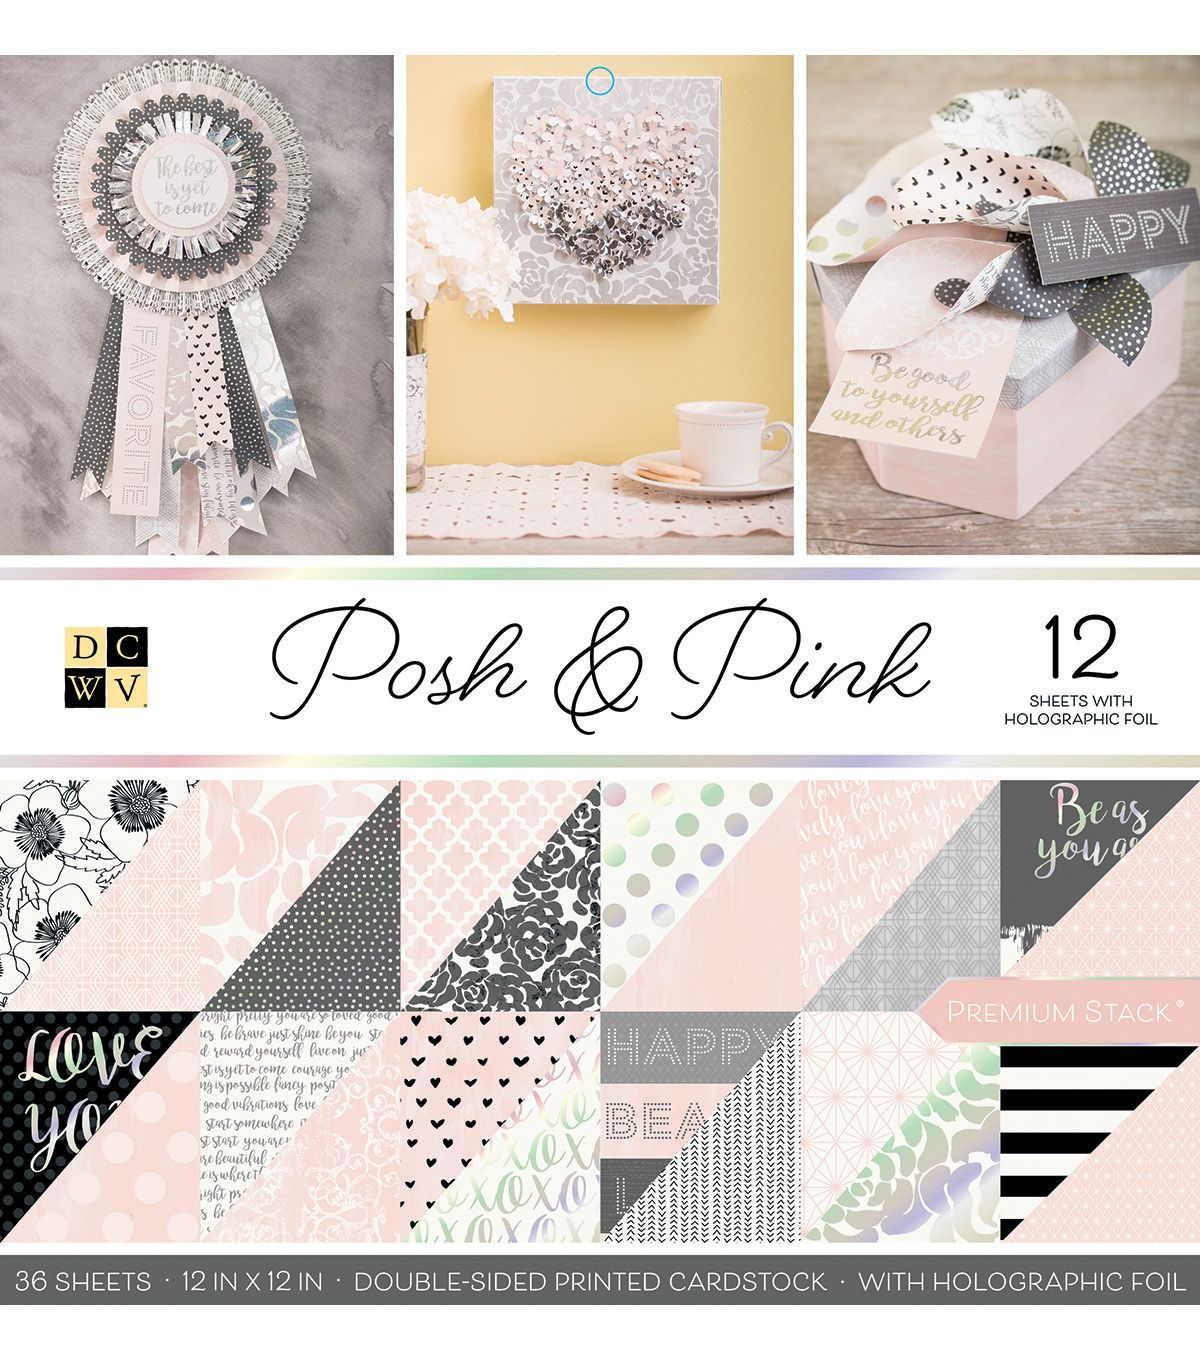 DCWV LILAC LOVE LOT of 18 Double-sided 12 X 12 Printed Cardstock Scrapbook